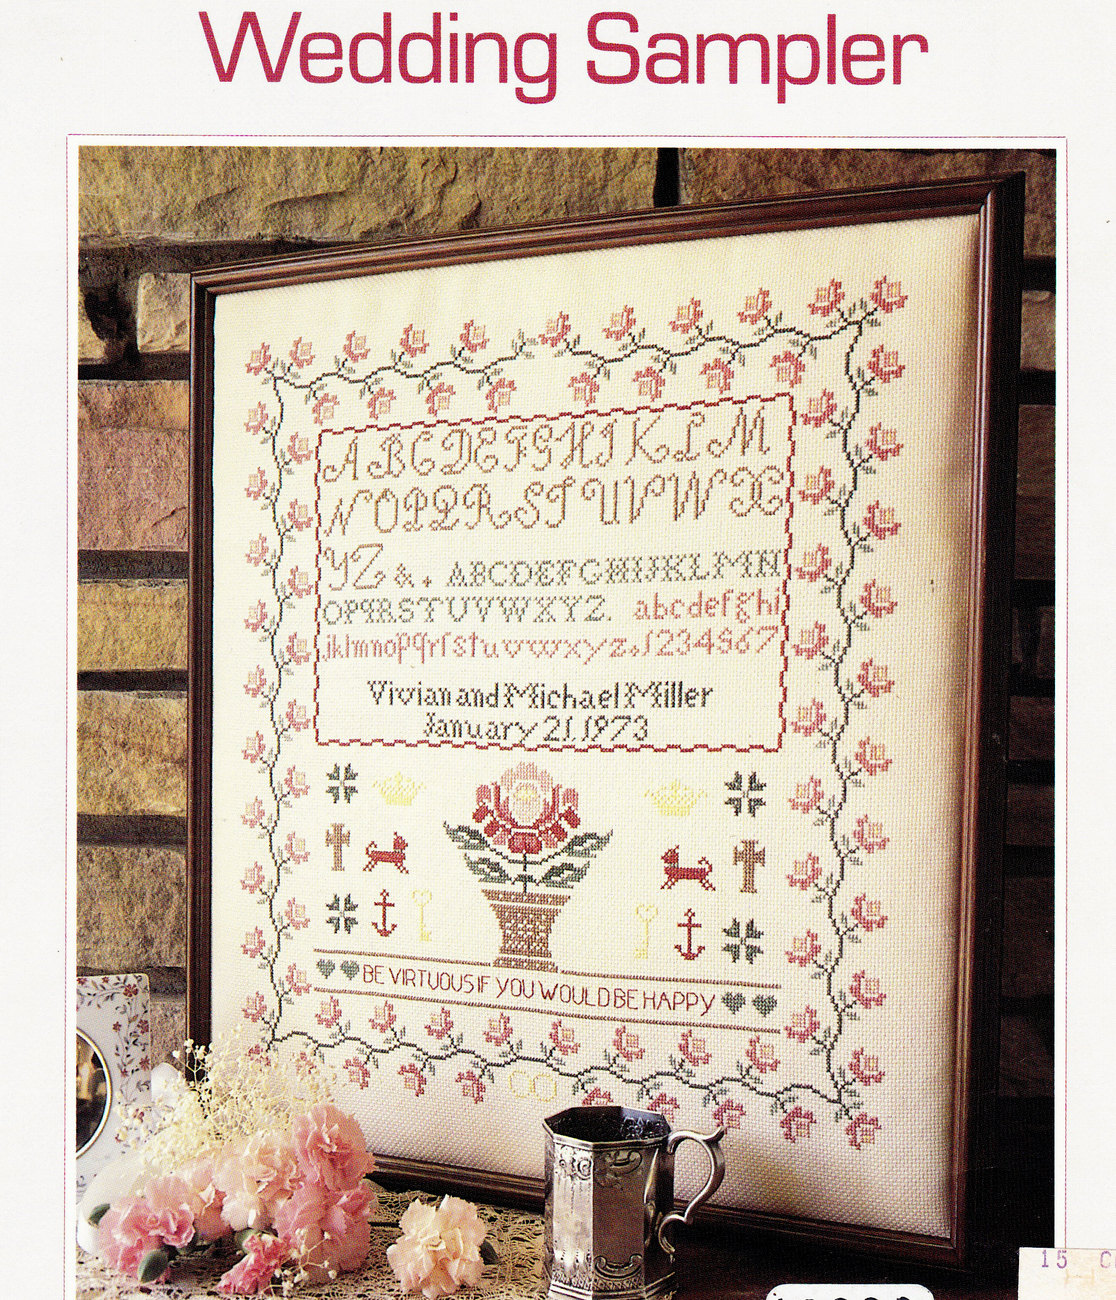 COUNTED CROSS STITCH WEDDING SAMPLER